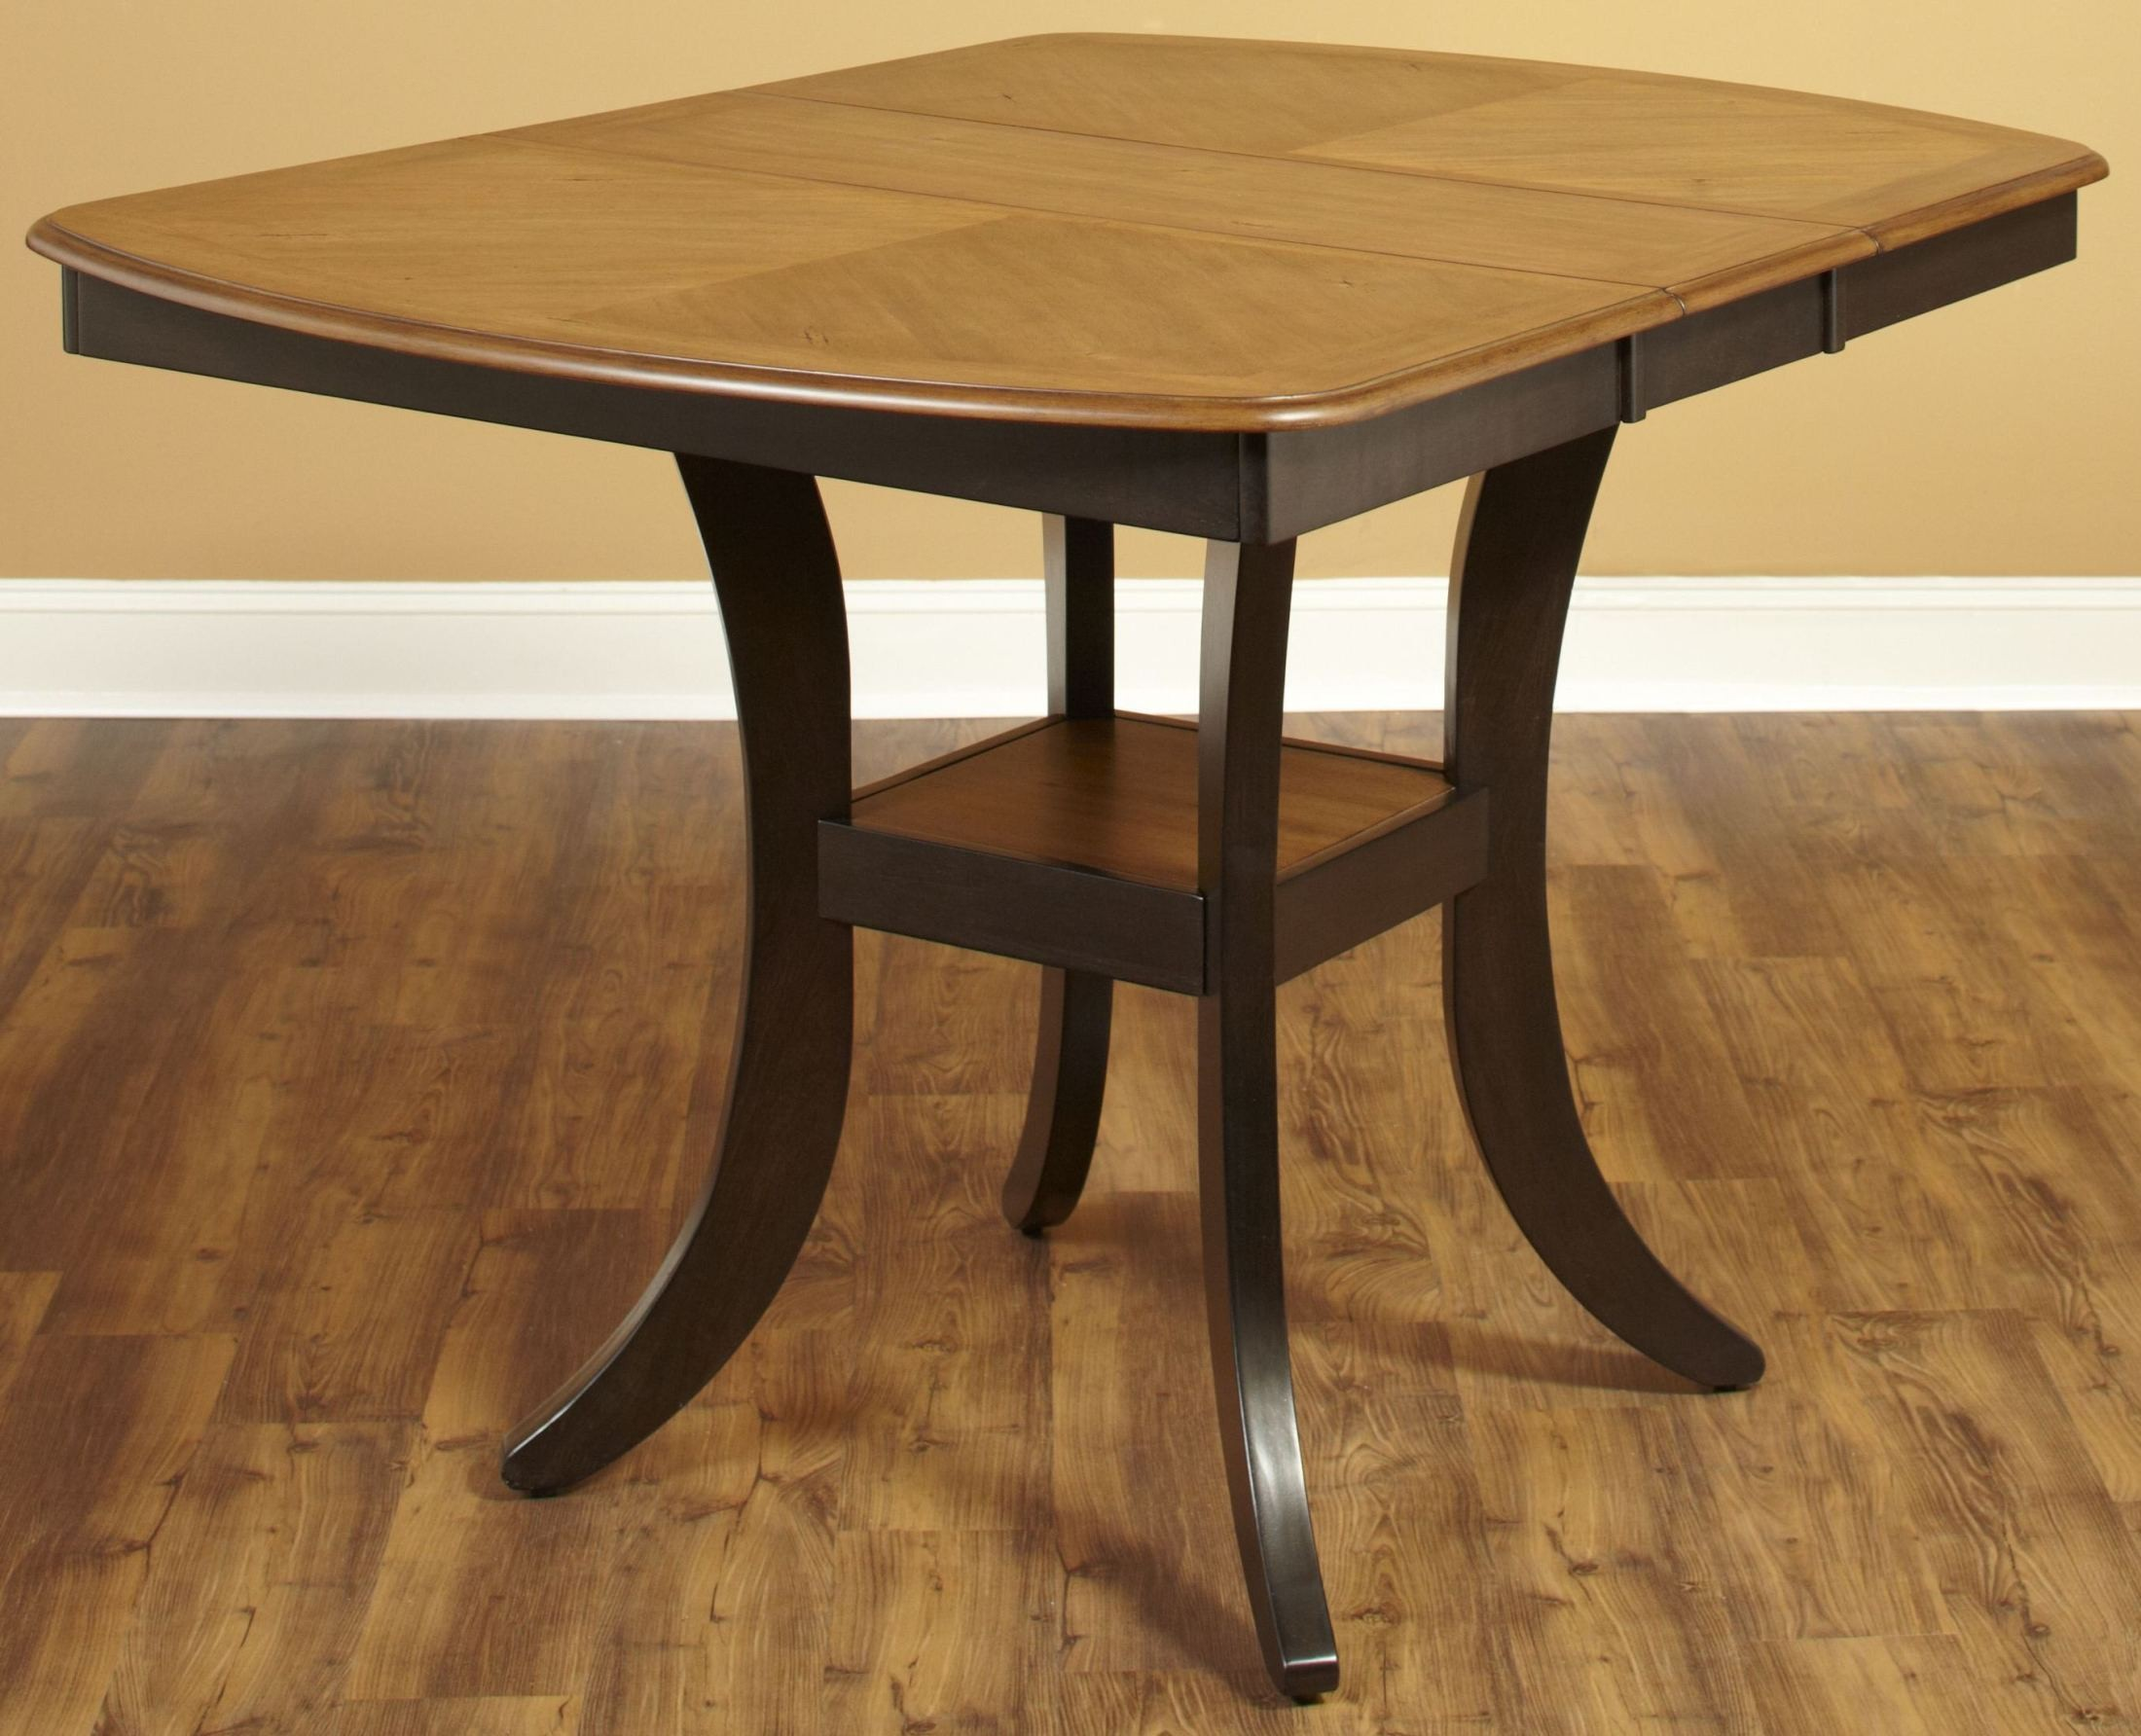 Table Height 36: Bungalow Brown Extendable Rectangular Counter Height Table